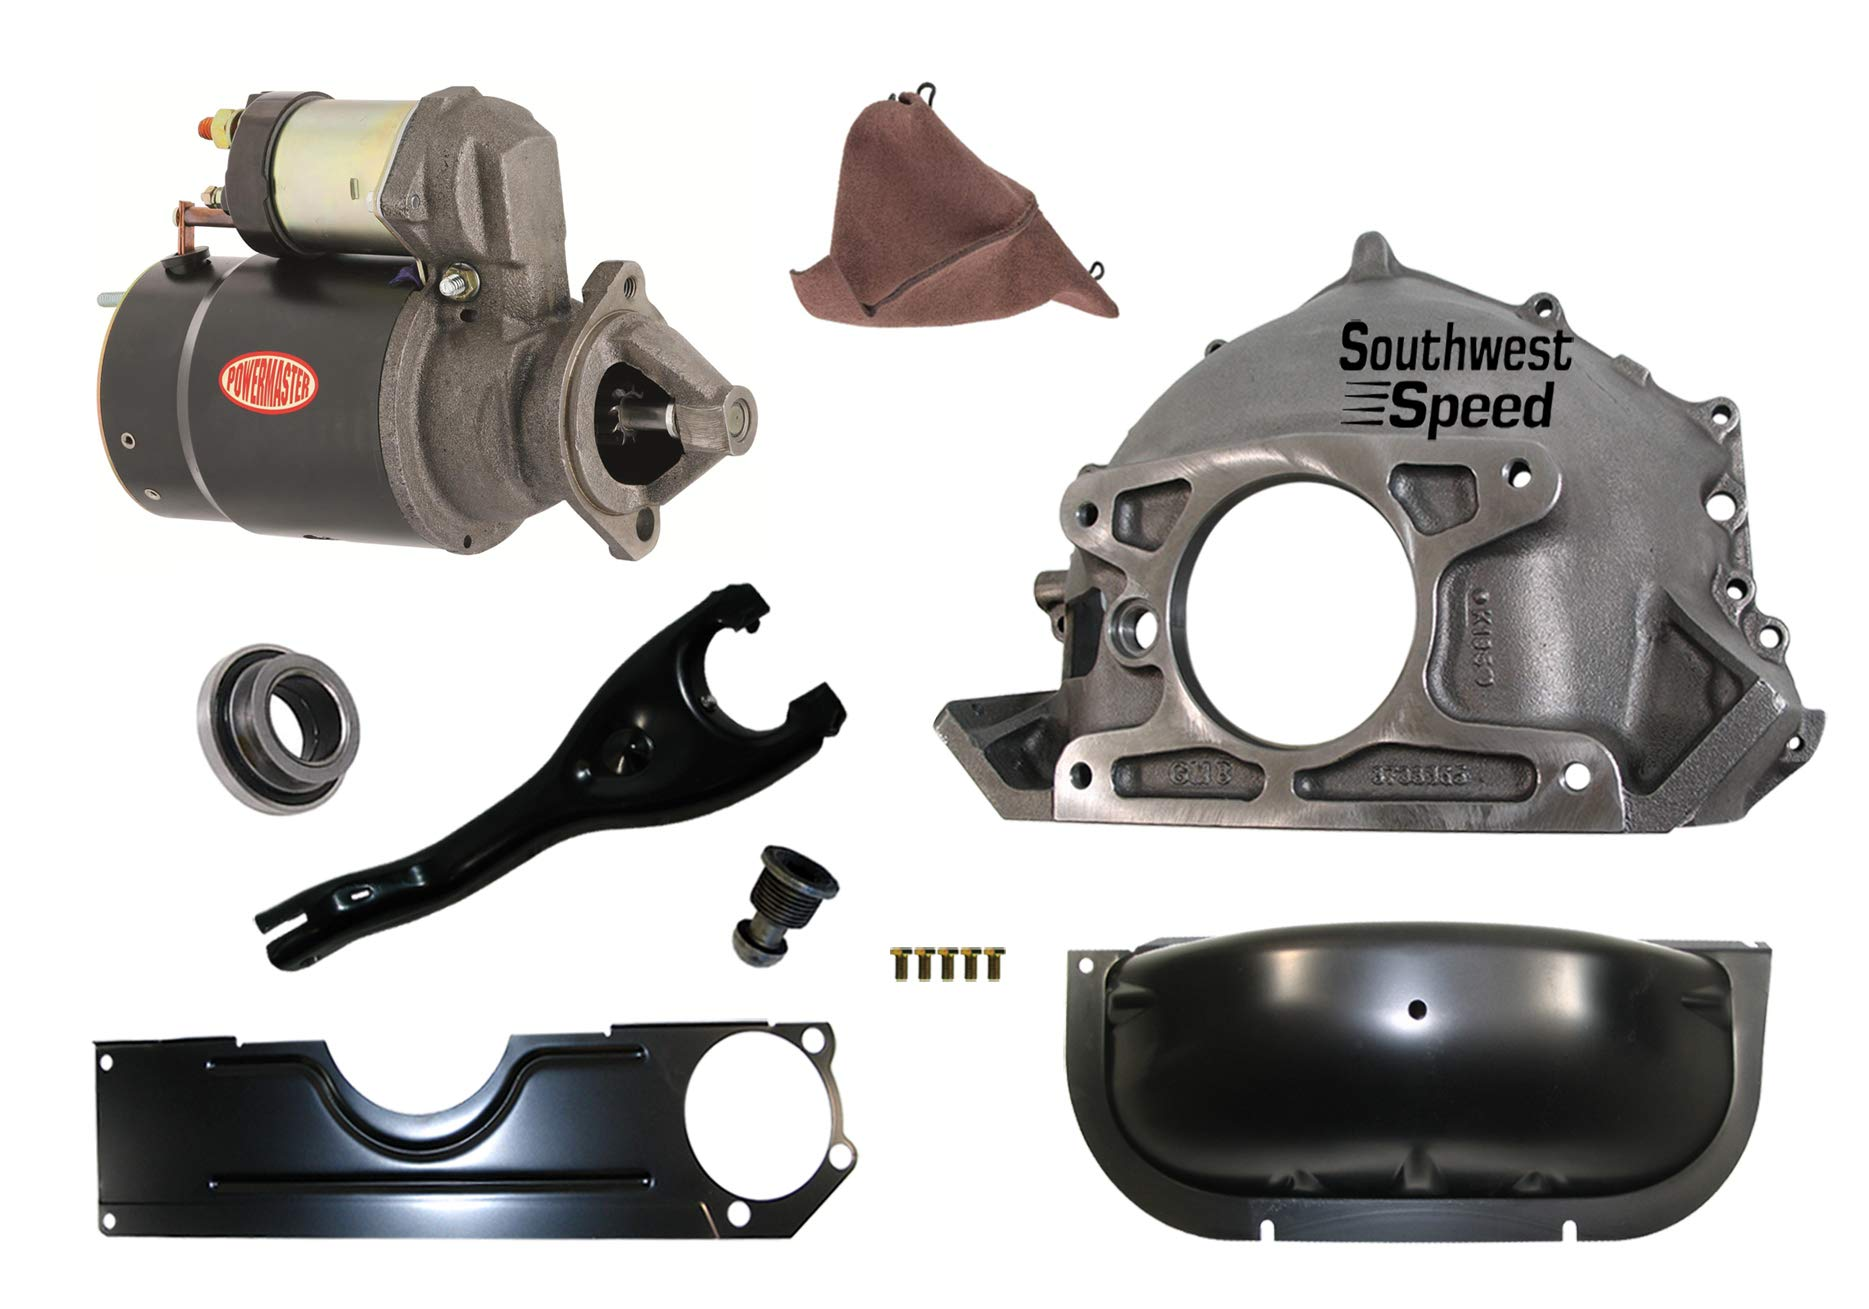 NEW CHEVY BELLHOUSING KIT WITH POWERMASTER STARTER,INSPECTION & DUST COVERS,CLUTCH FORK & BOOT,BALL & THROWOUT BEARING,FOR 55-57 CHEVY & 55-59 CORVETTE WITH MANUAL TRANSMISSION,STAMPED #GM 3733365